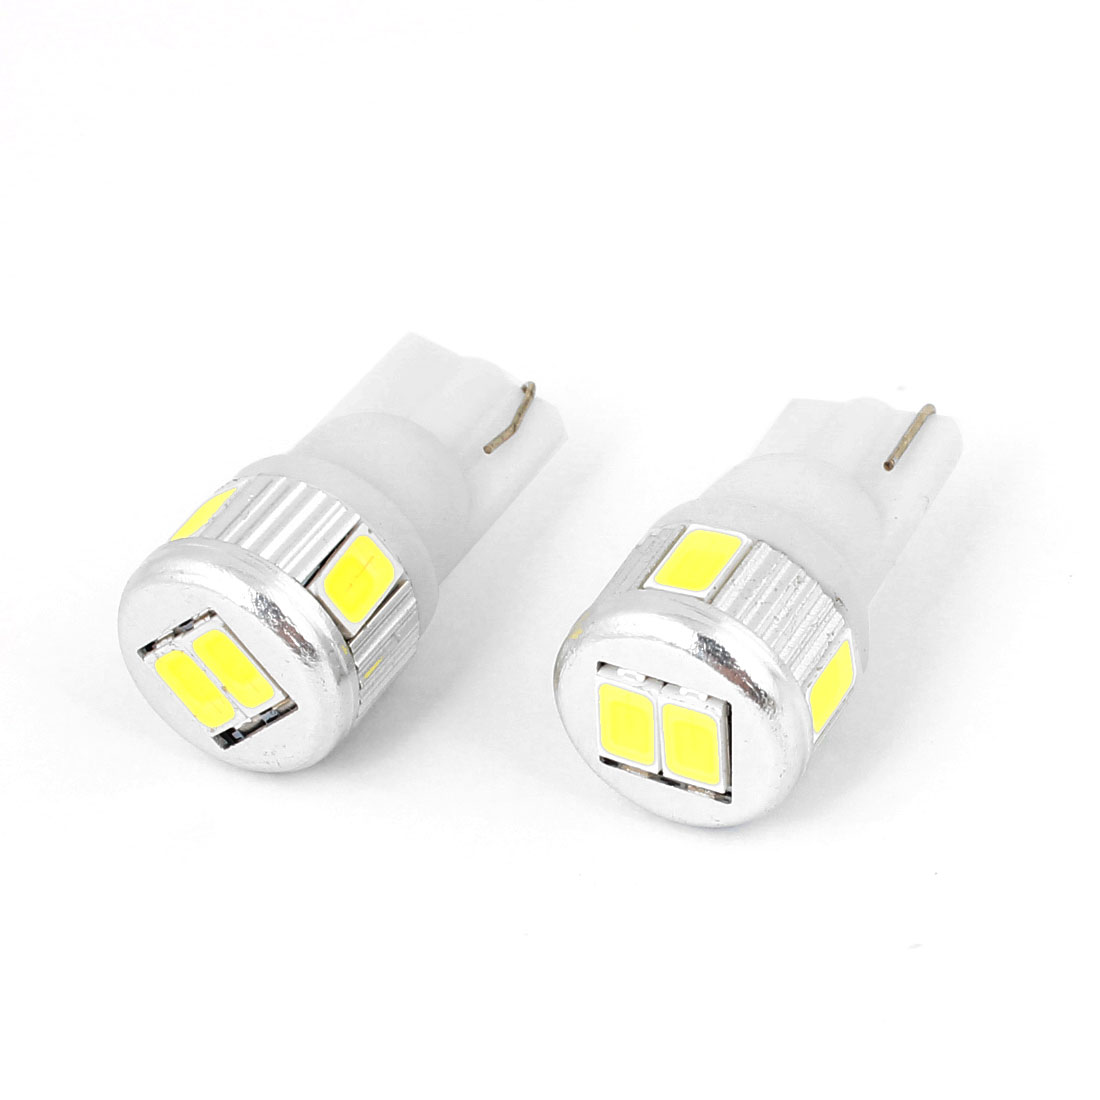 Pair T10 922 6 White 5630 SMD Dashboard LED Light Bulb for Auto Car internal